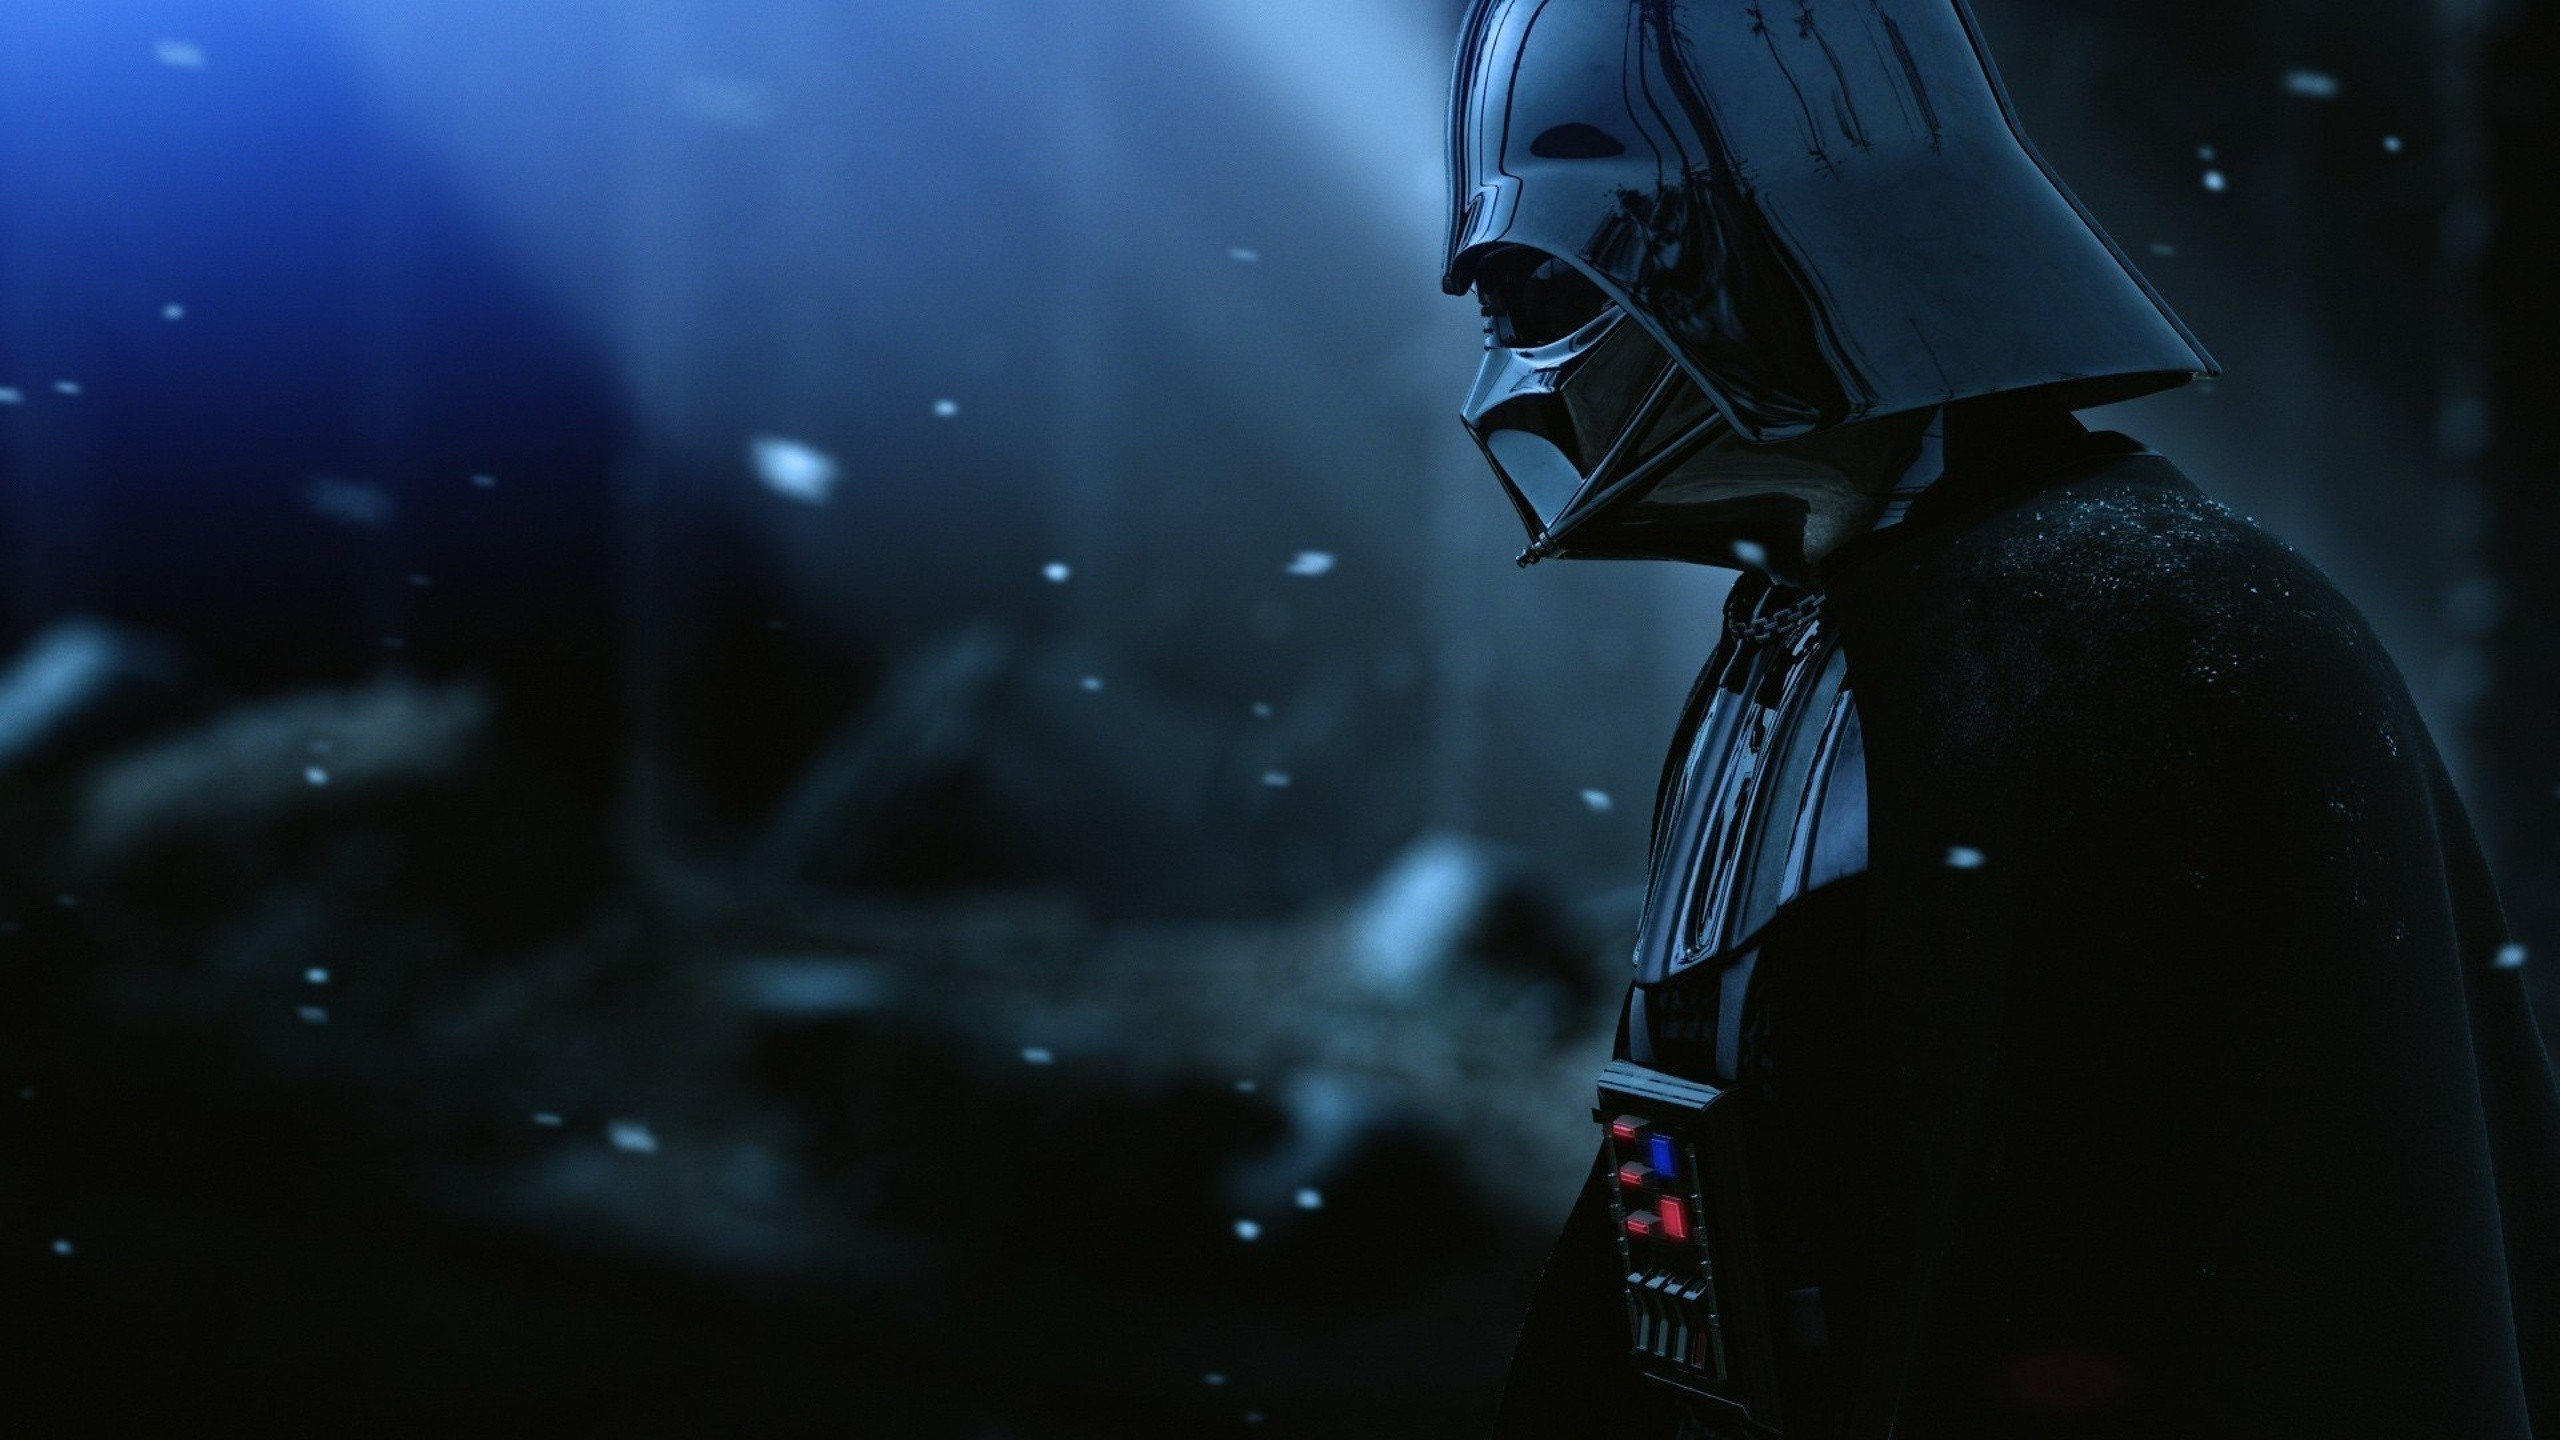 Star Wars Wallpapers 2560X1440 (88+ background pictures)